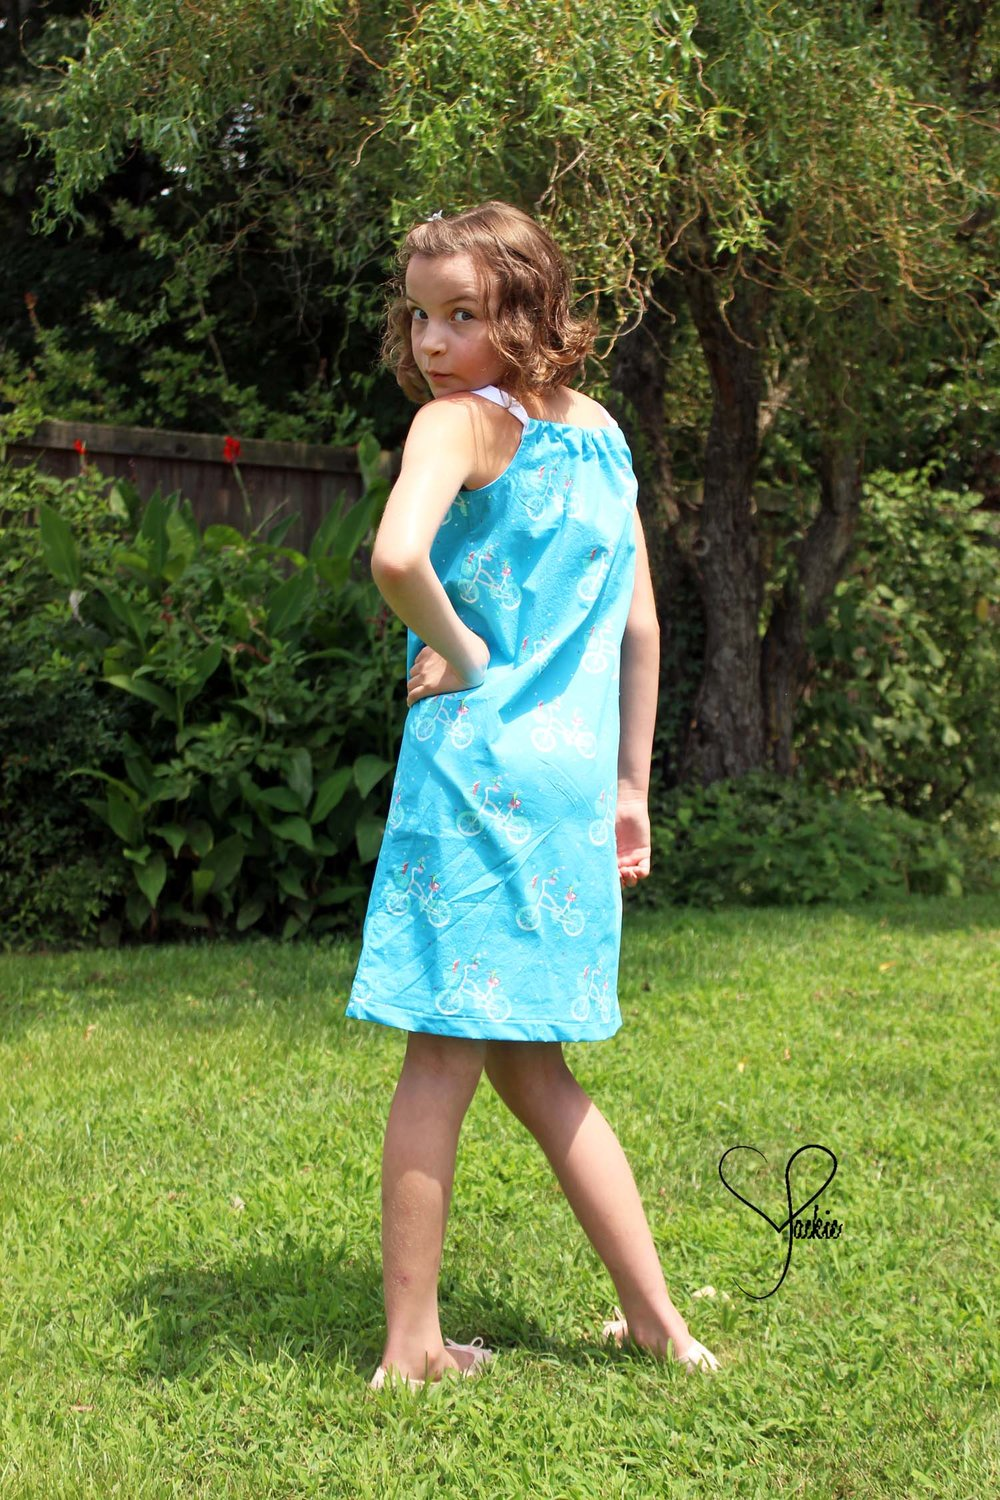 JUB Penelope Pillowcase dress_IMG_5385.jpg